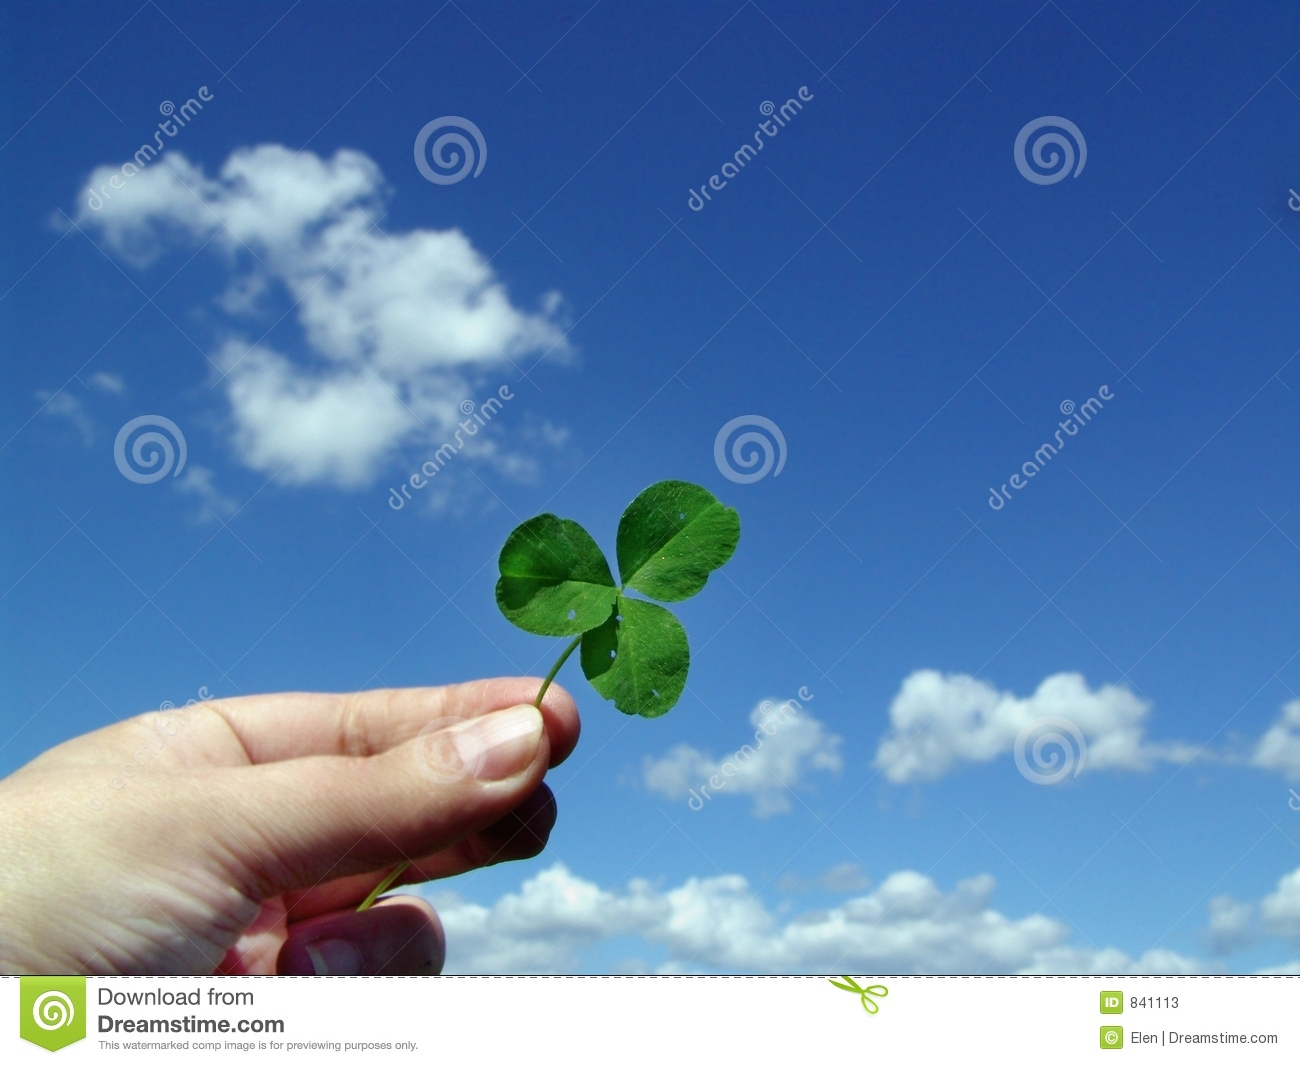 Leaf of clover in hand